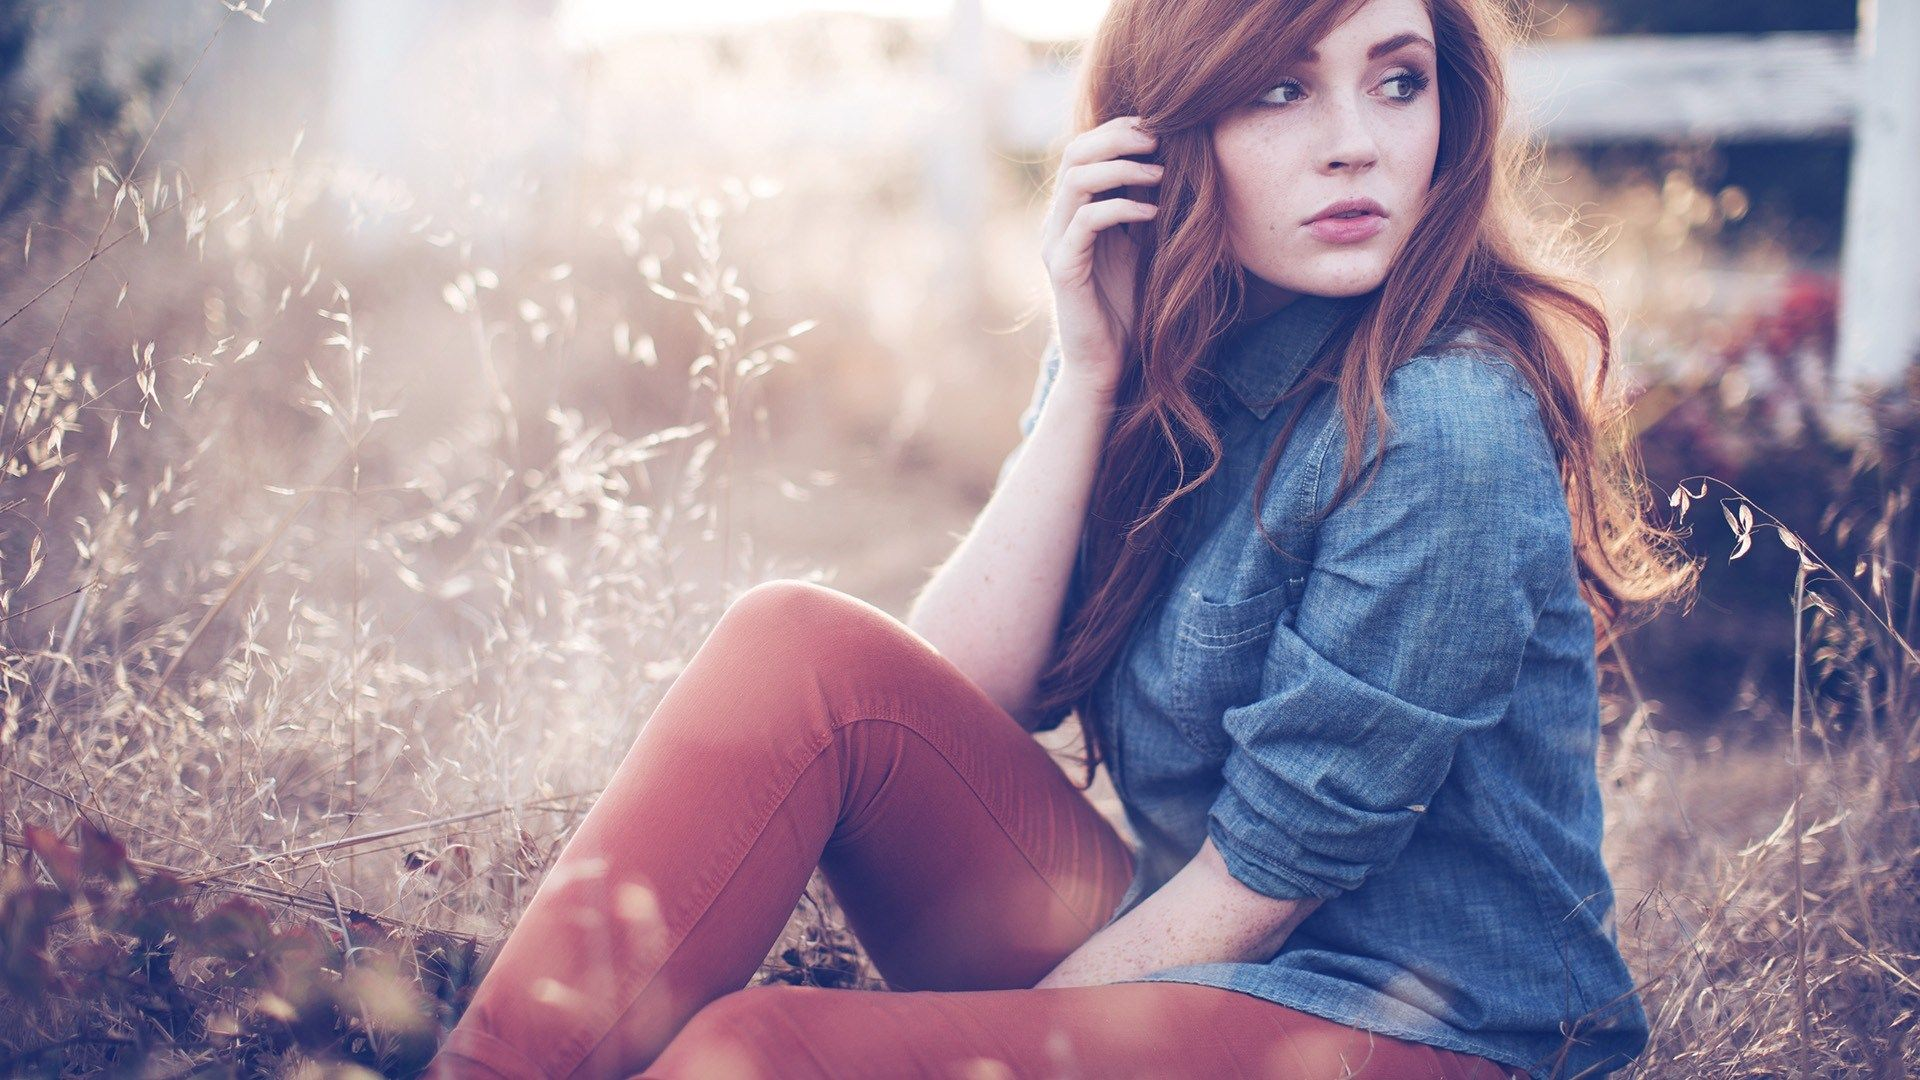 Denim Shirt Girl Filed Sepia Colors Hd Wallpaper  Cool